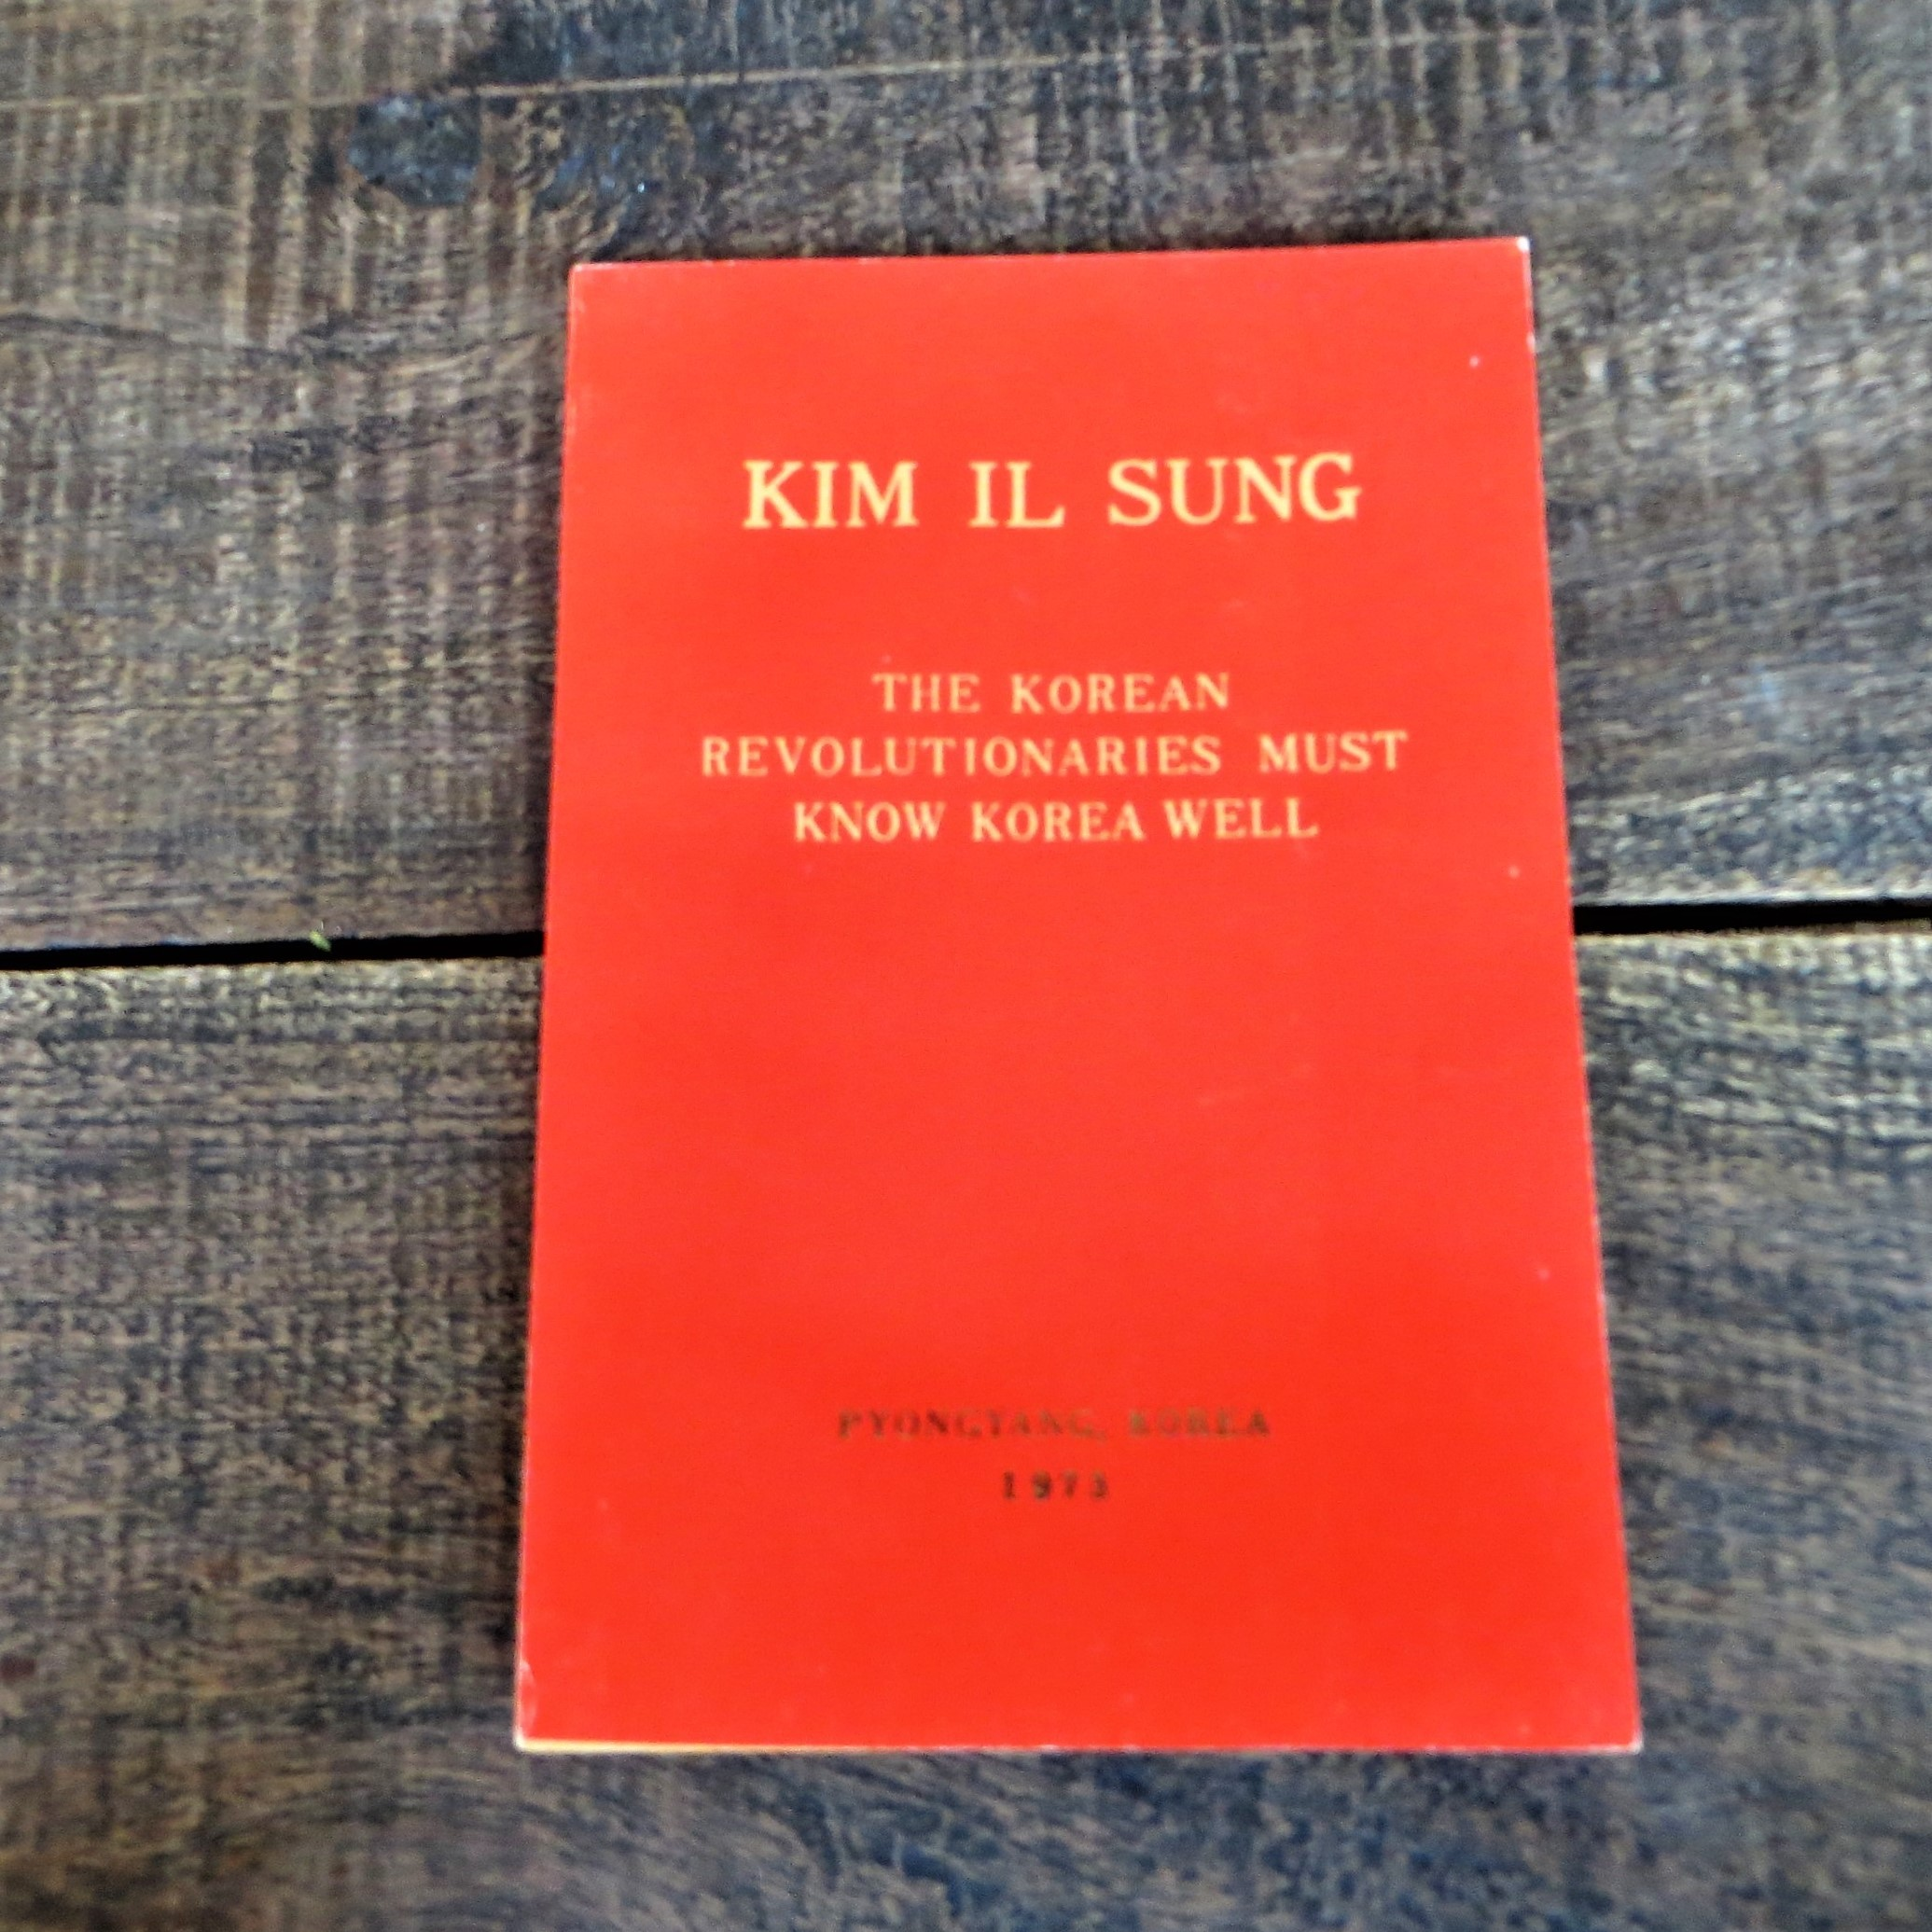 book-north-korea-kim-il-sung-1-3